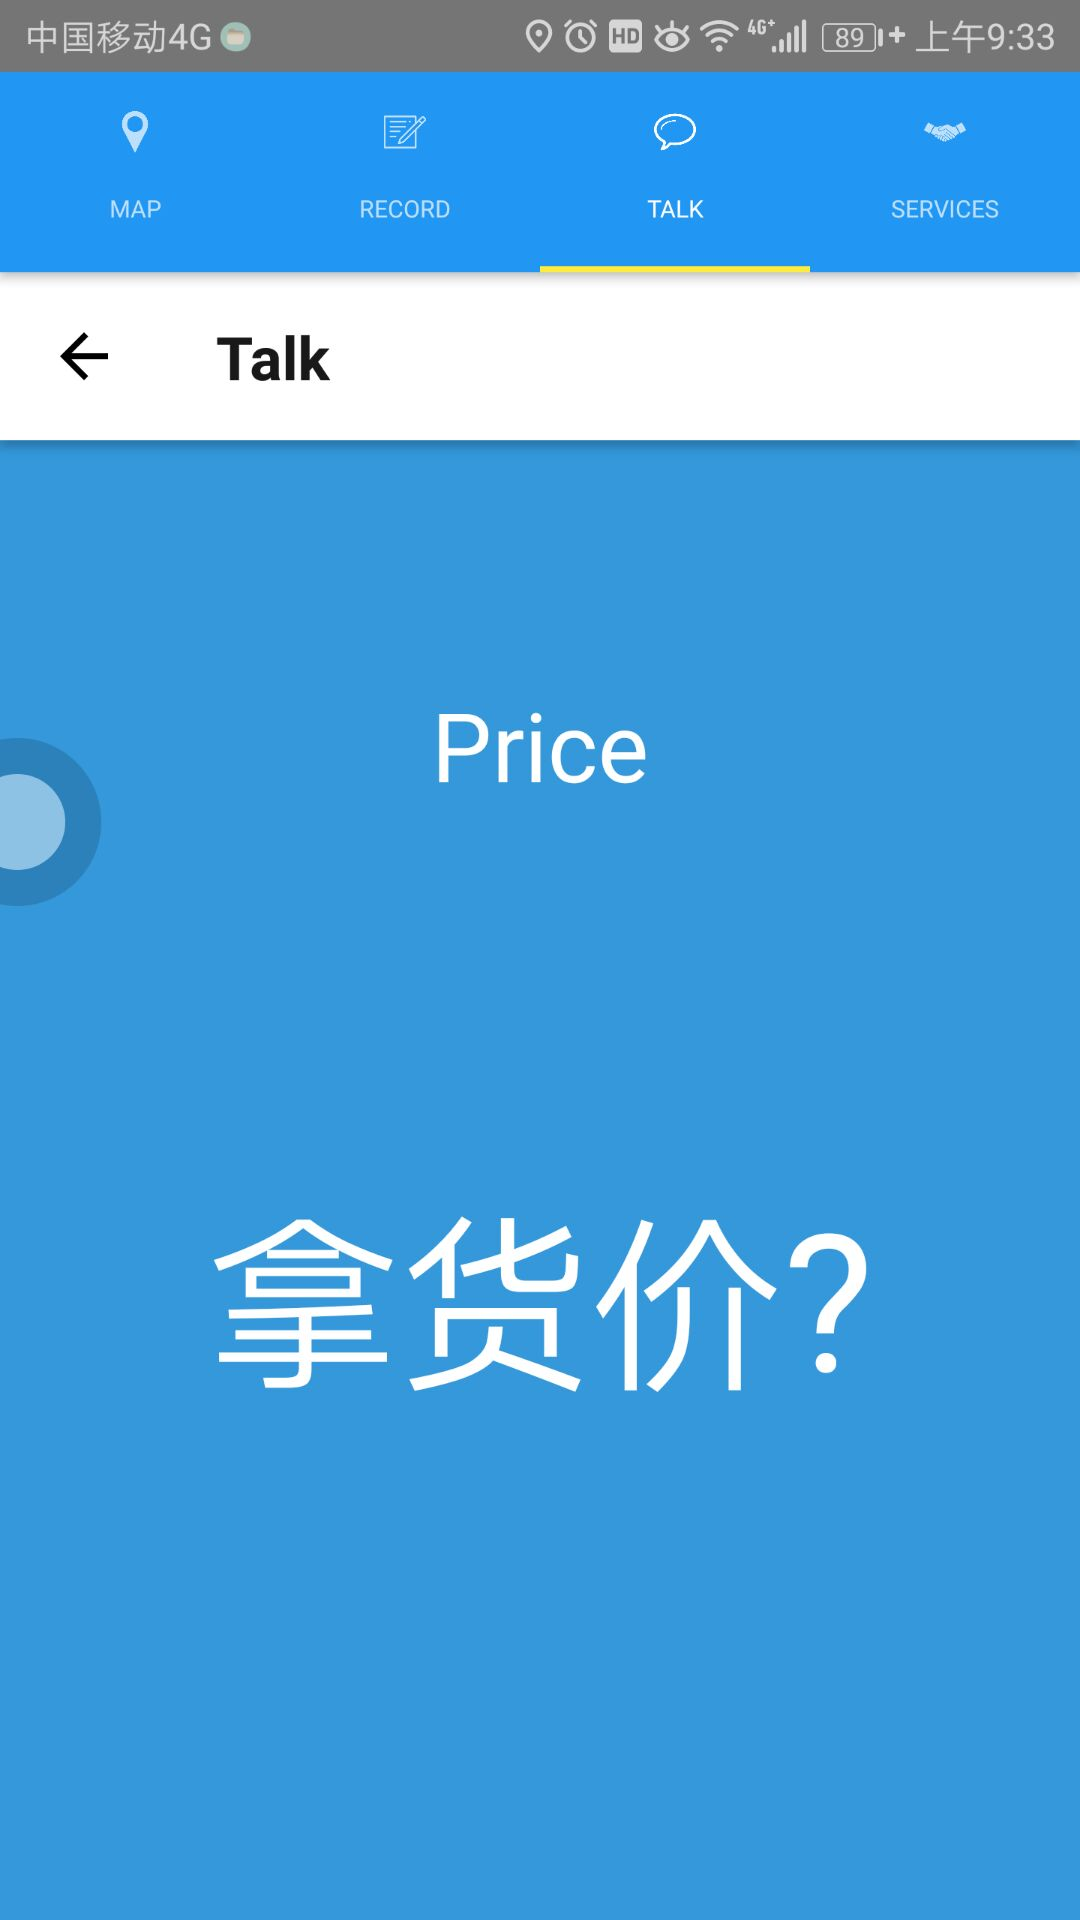 Yiwu market guide App: ask for price